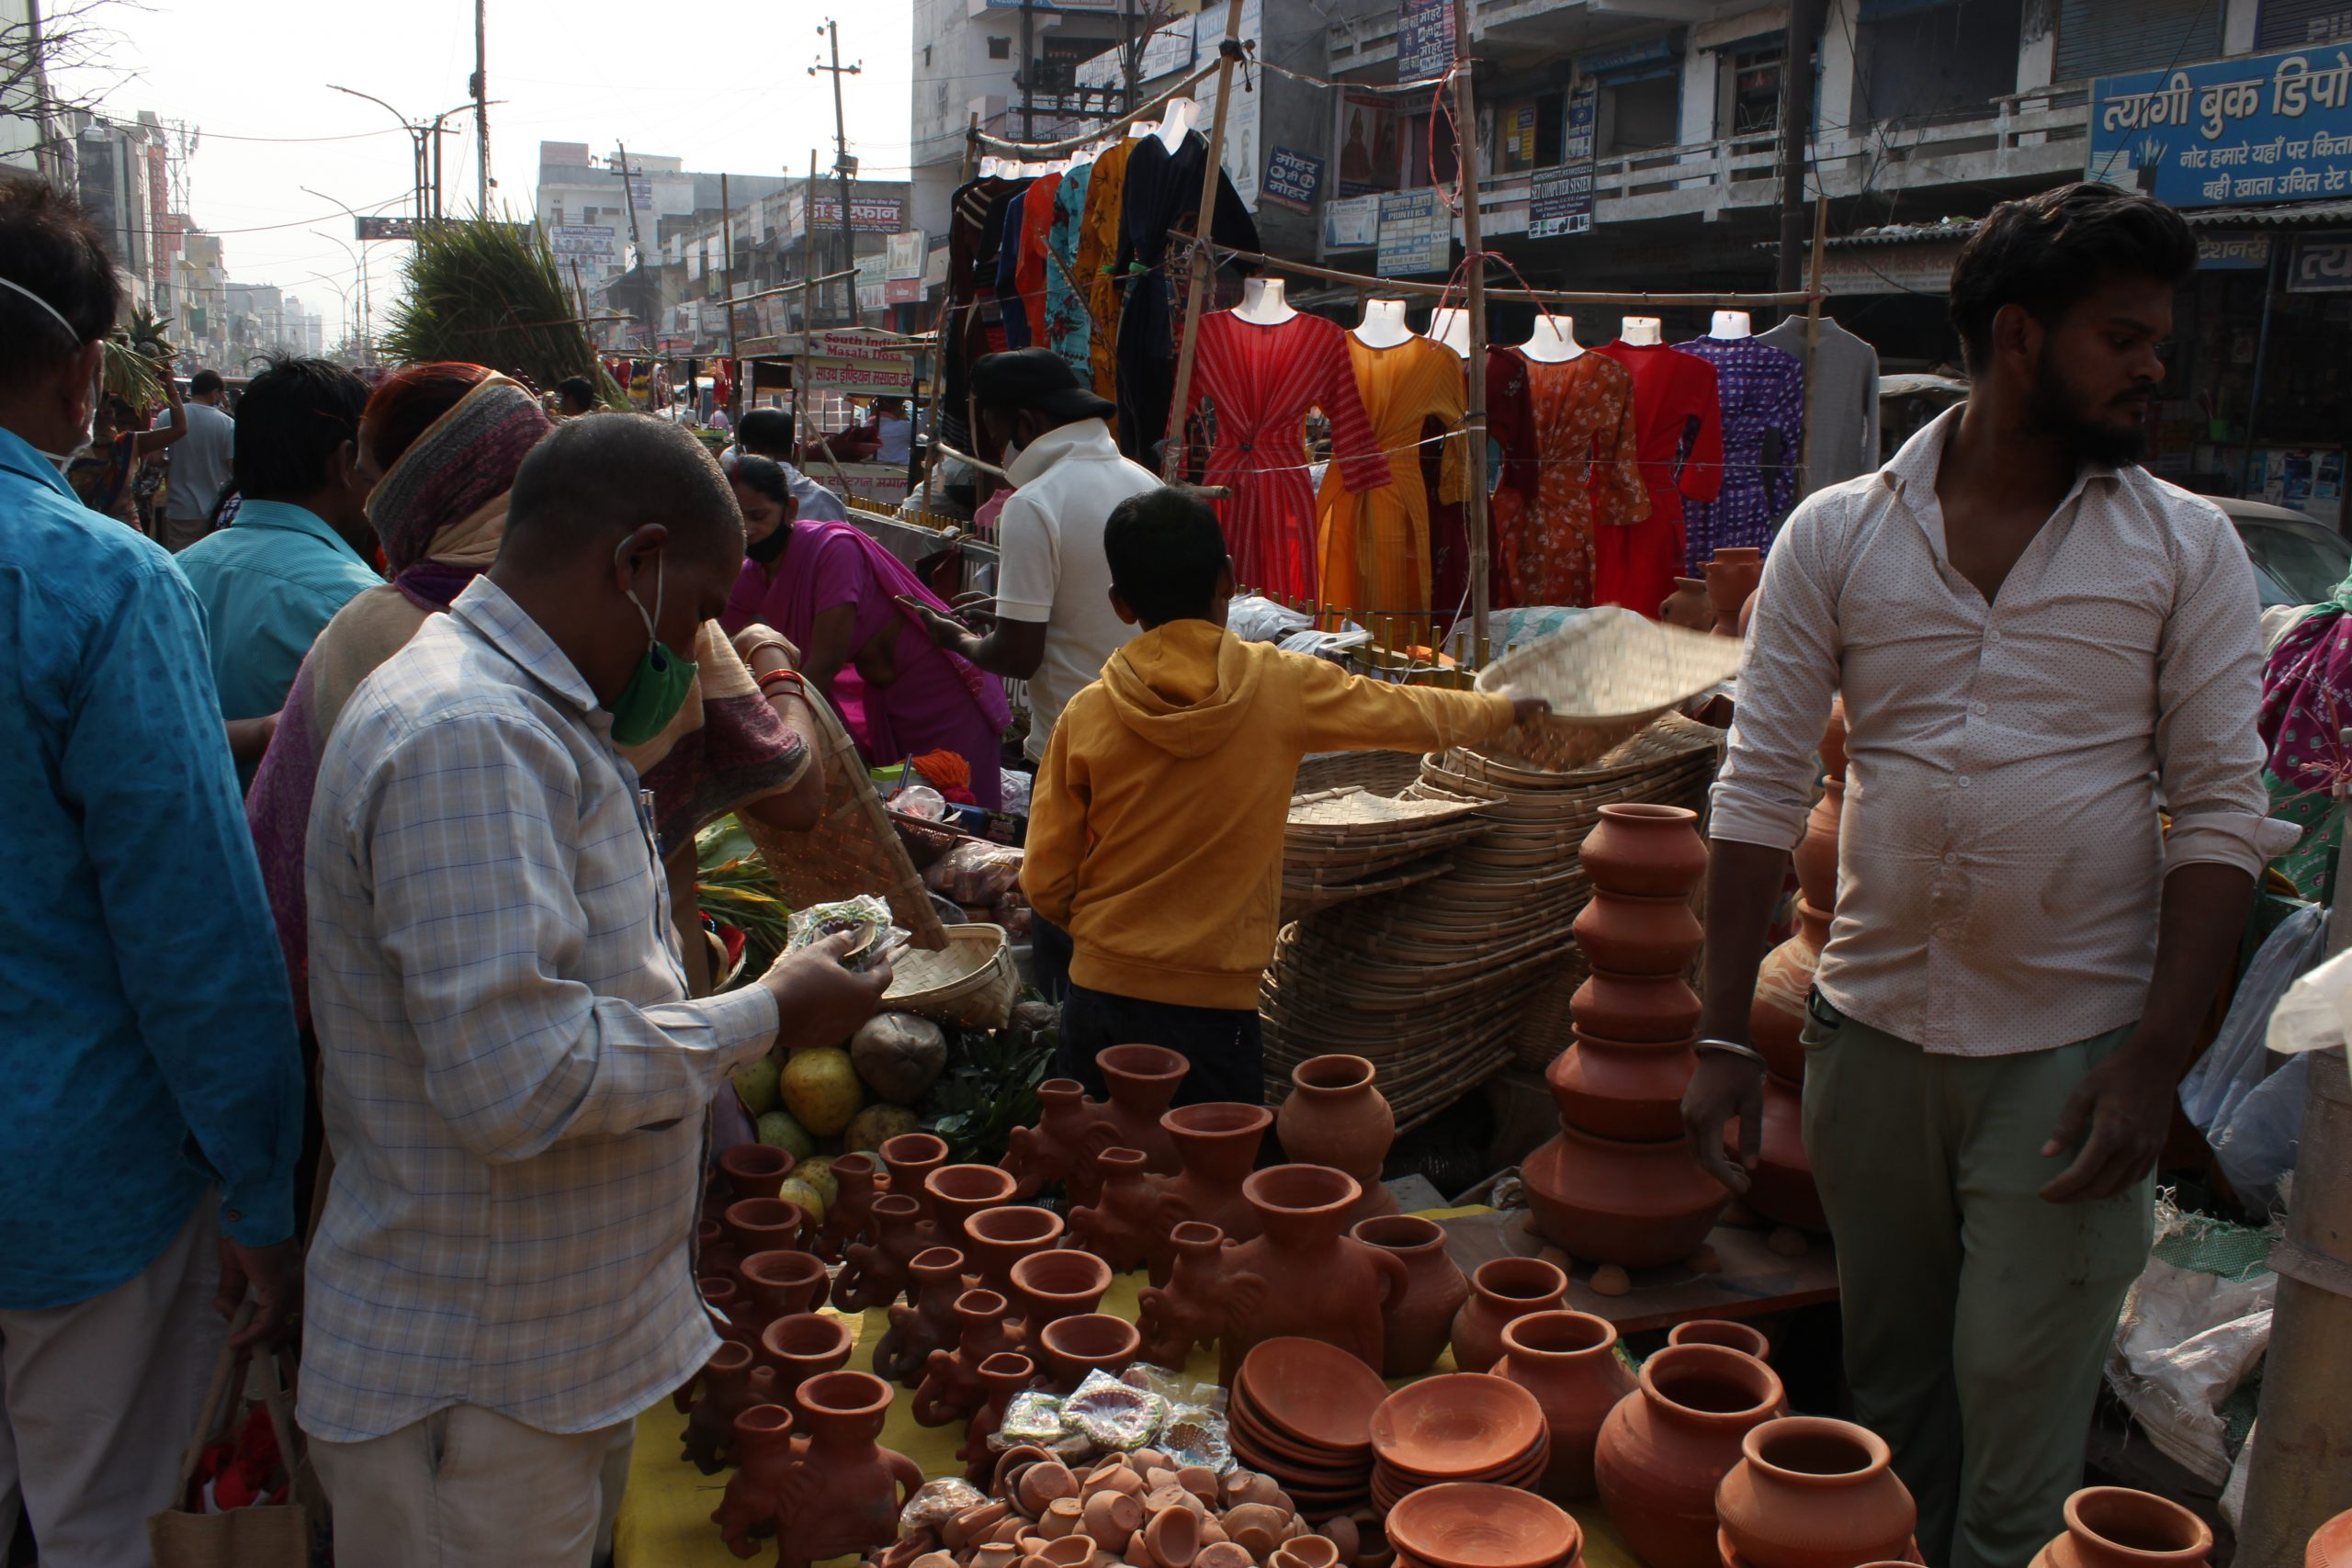 People purchasing clay pots in a market